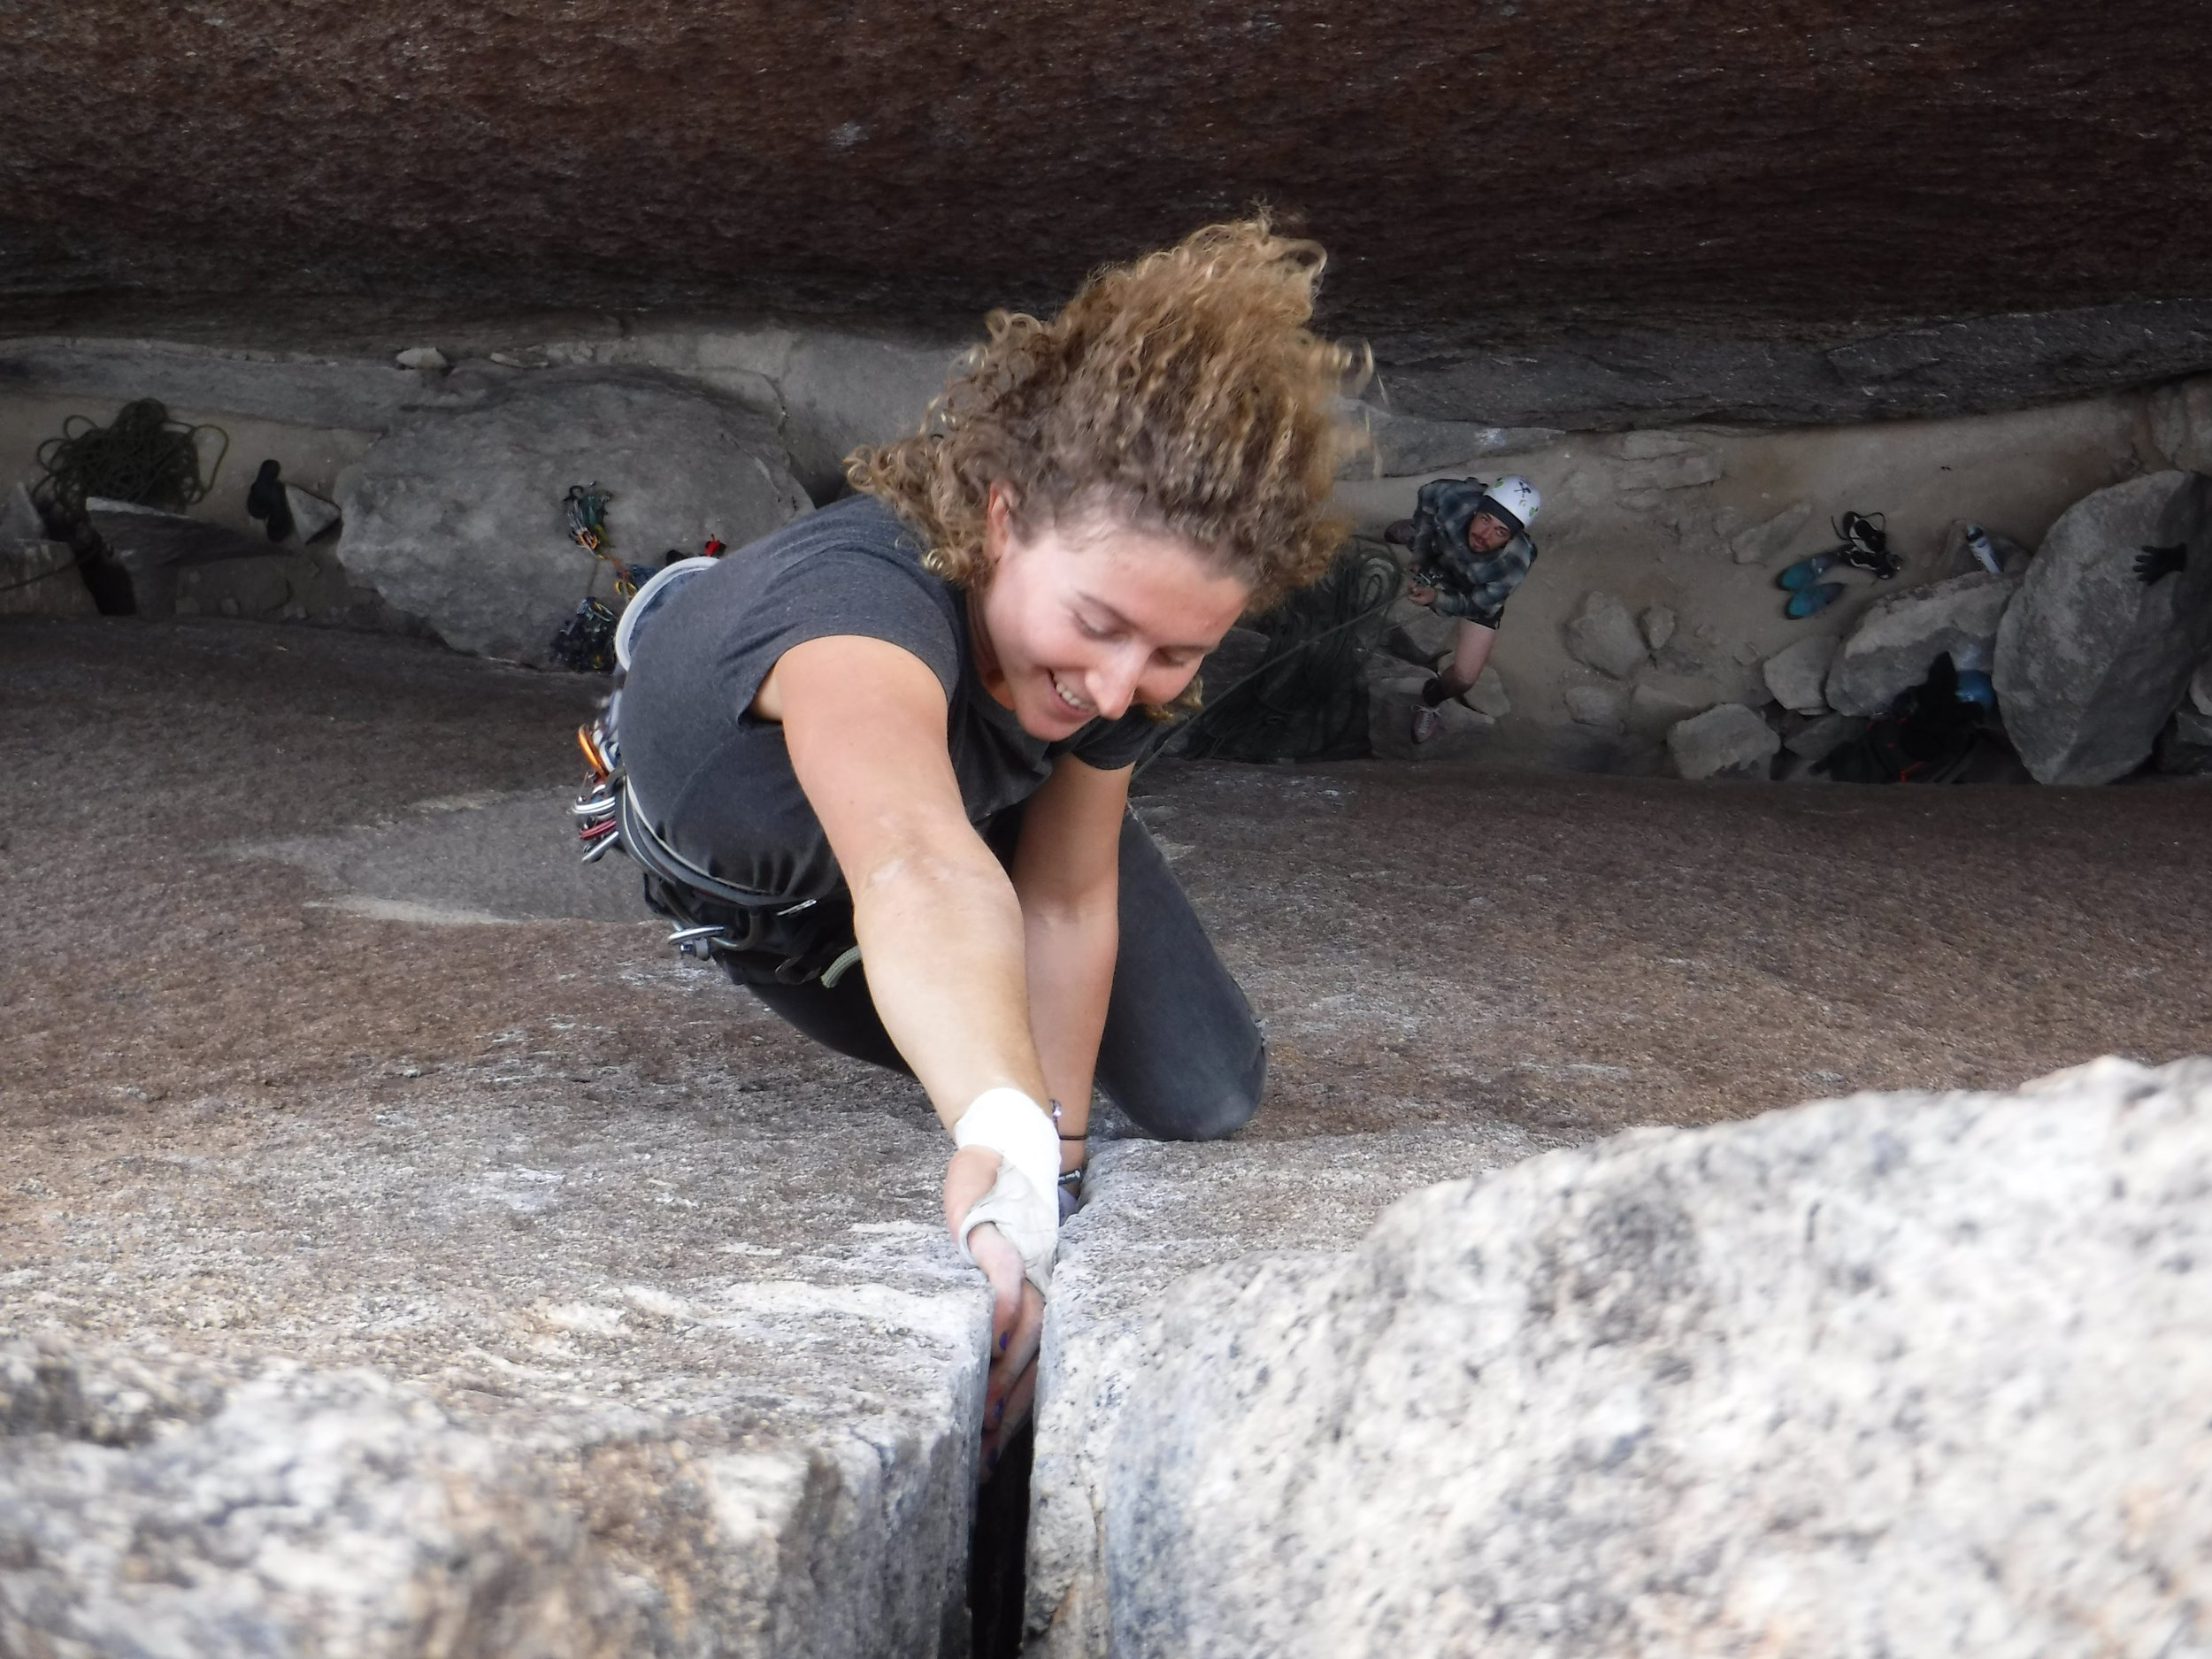 Hitting the Road as a rock Climber - One Chick Travels (Heart of Darkness)